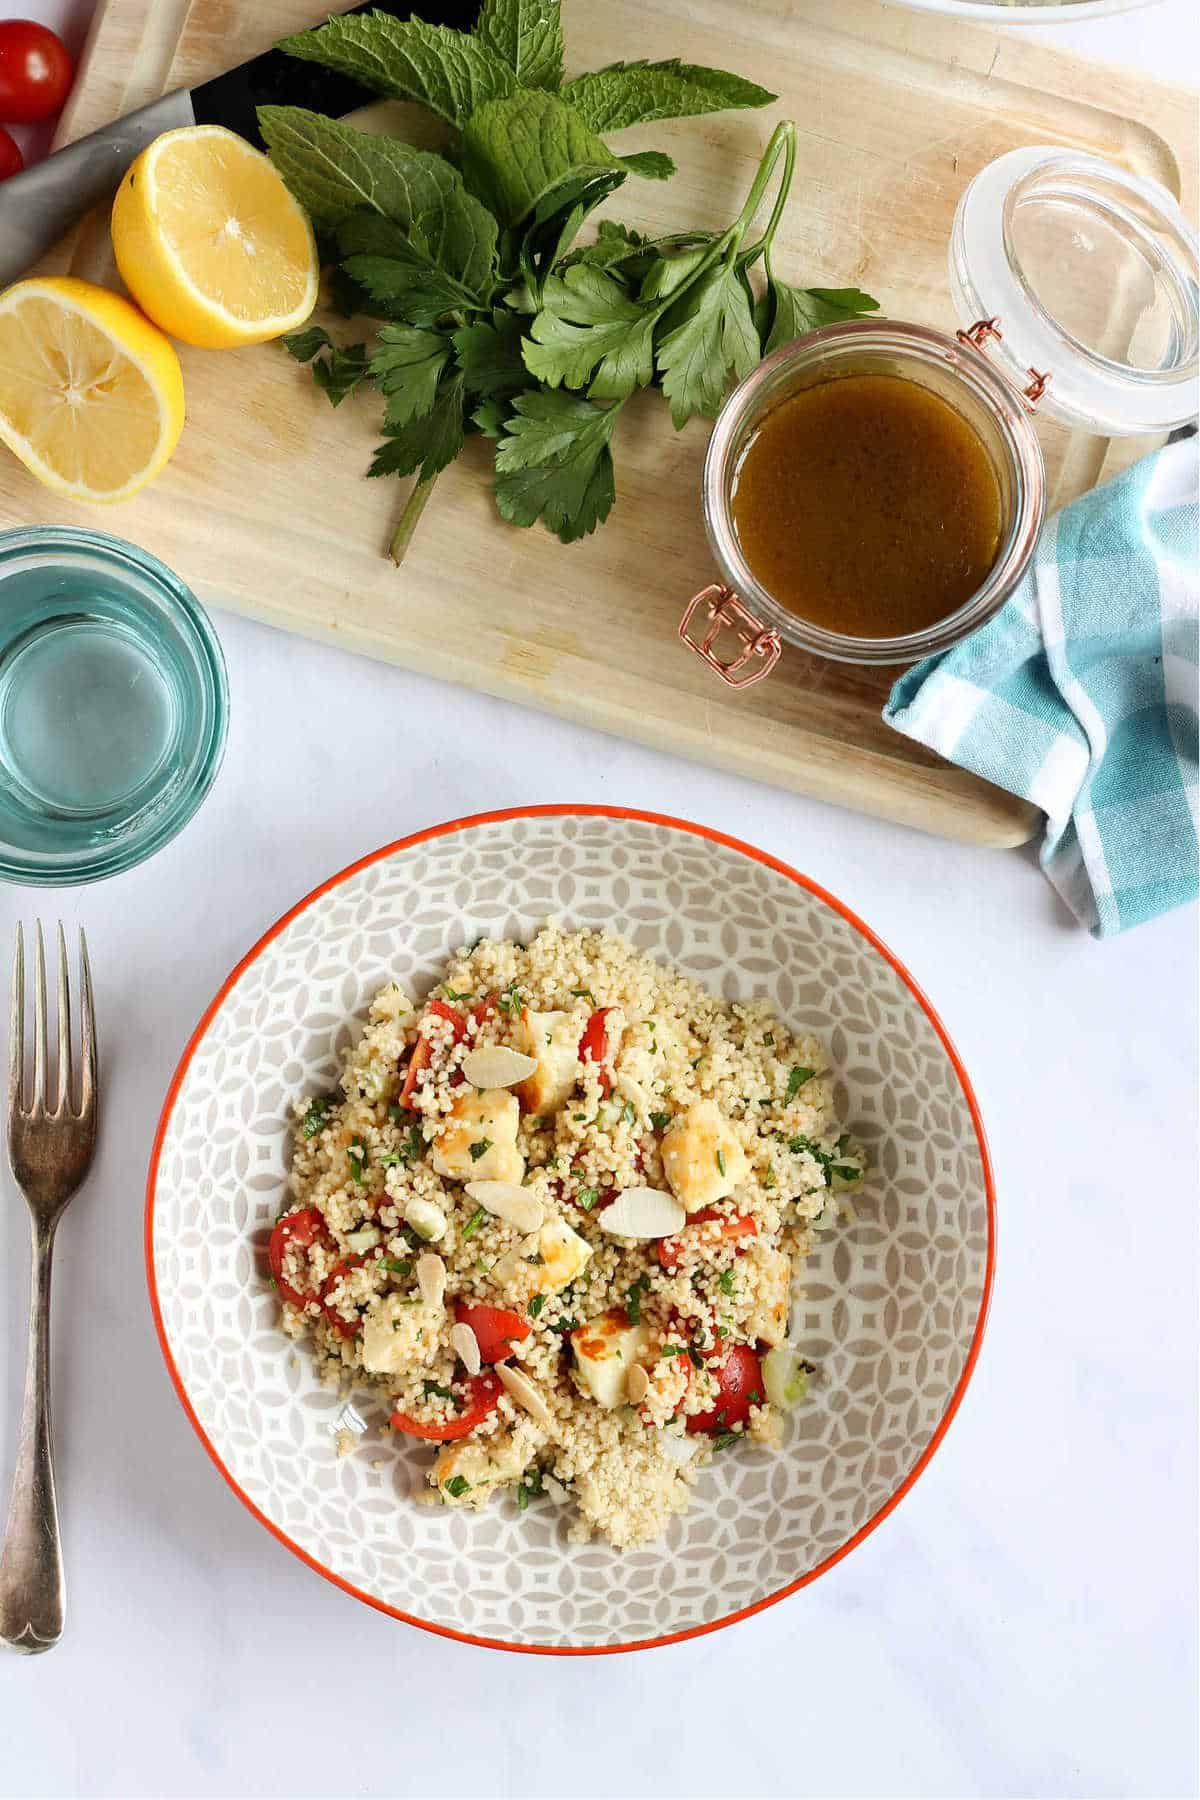 Overhead shot of couscous salad with salad dressing.